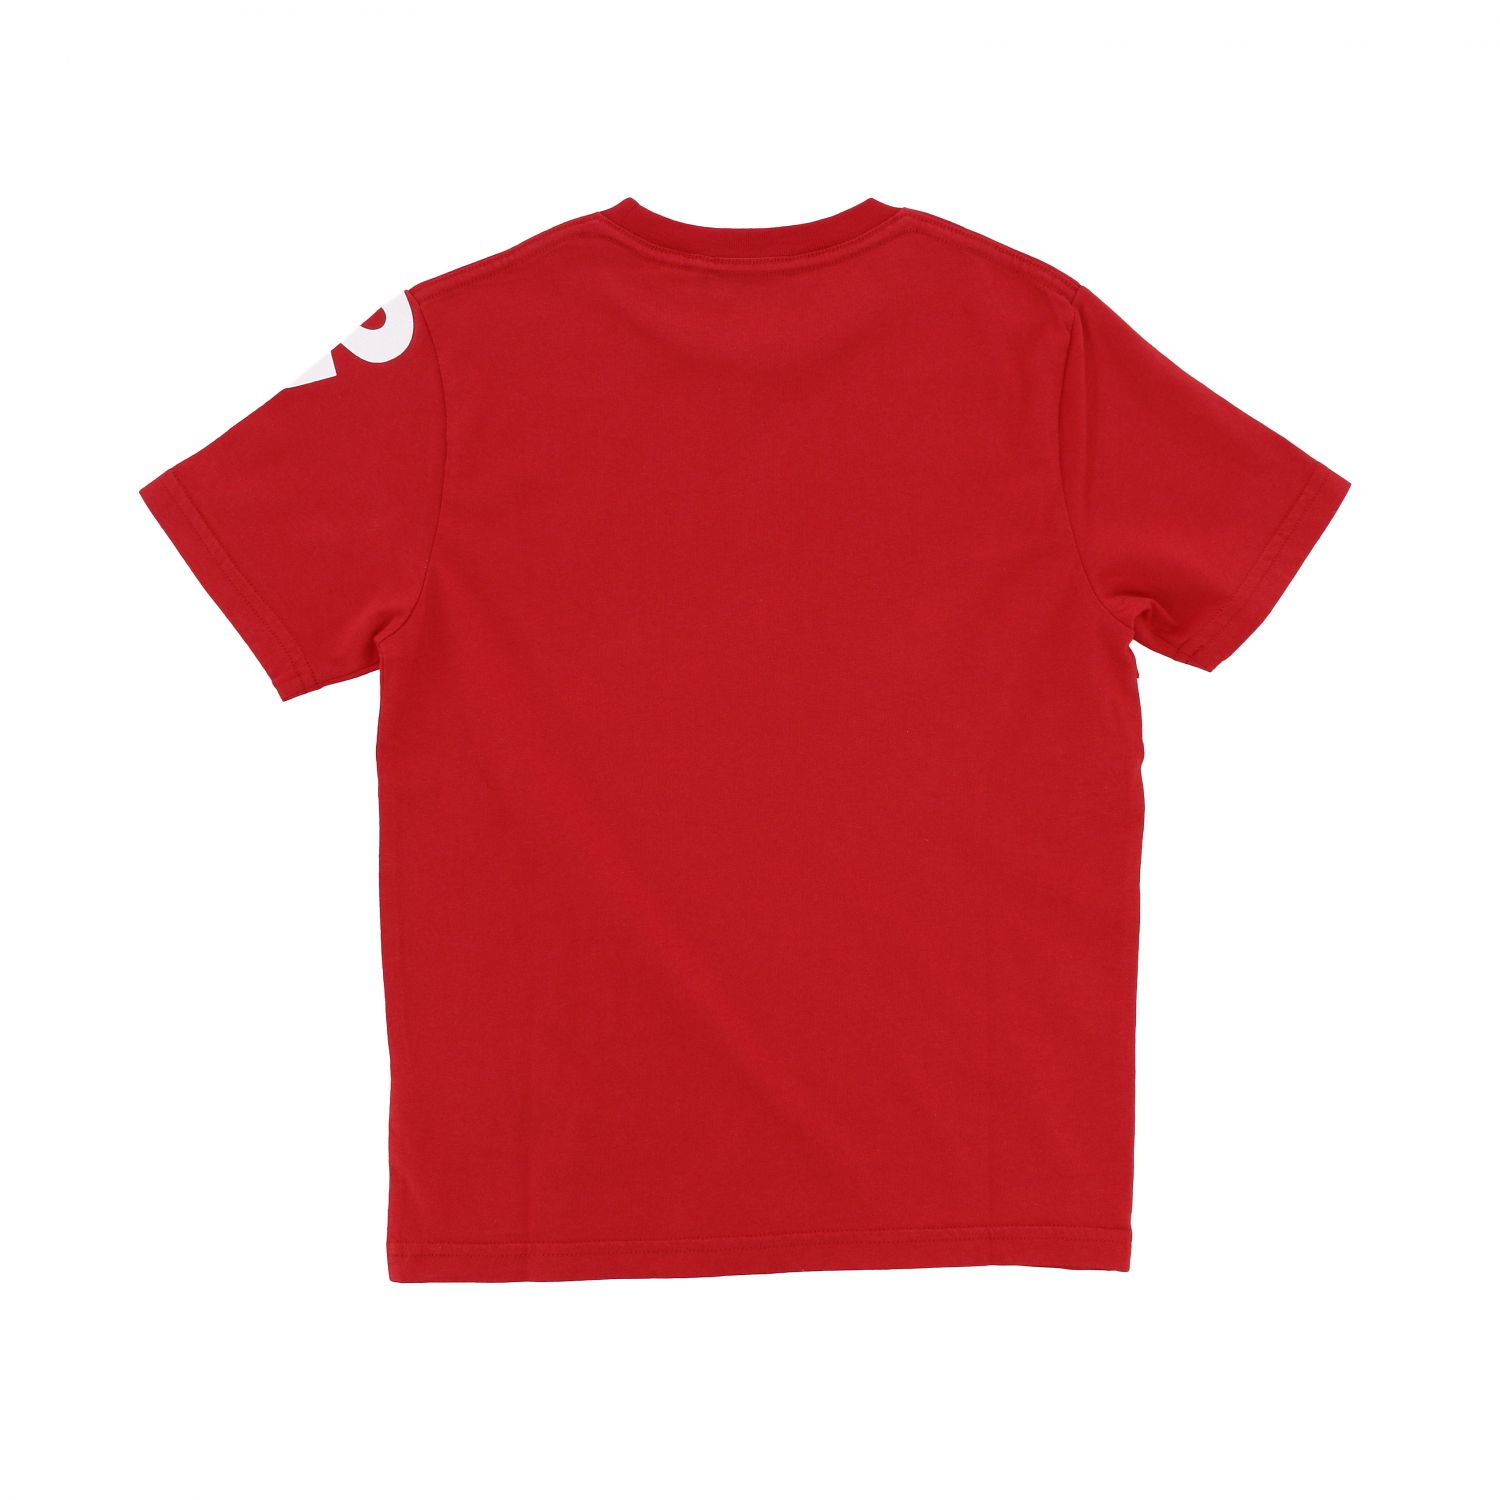 Dsquared2 Junior short-sleeved T-shirt with logo red 2